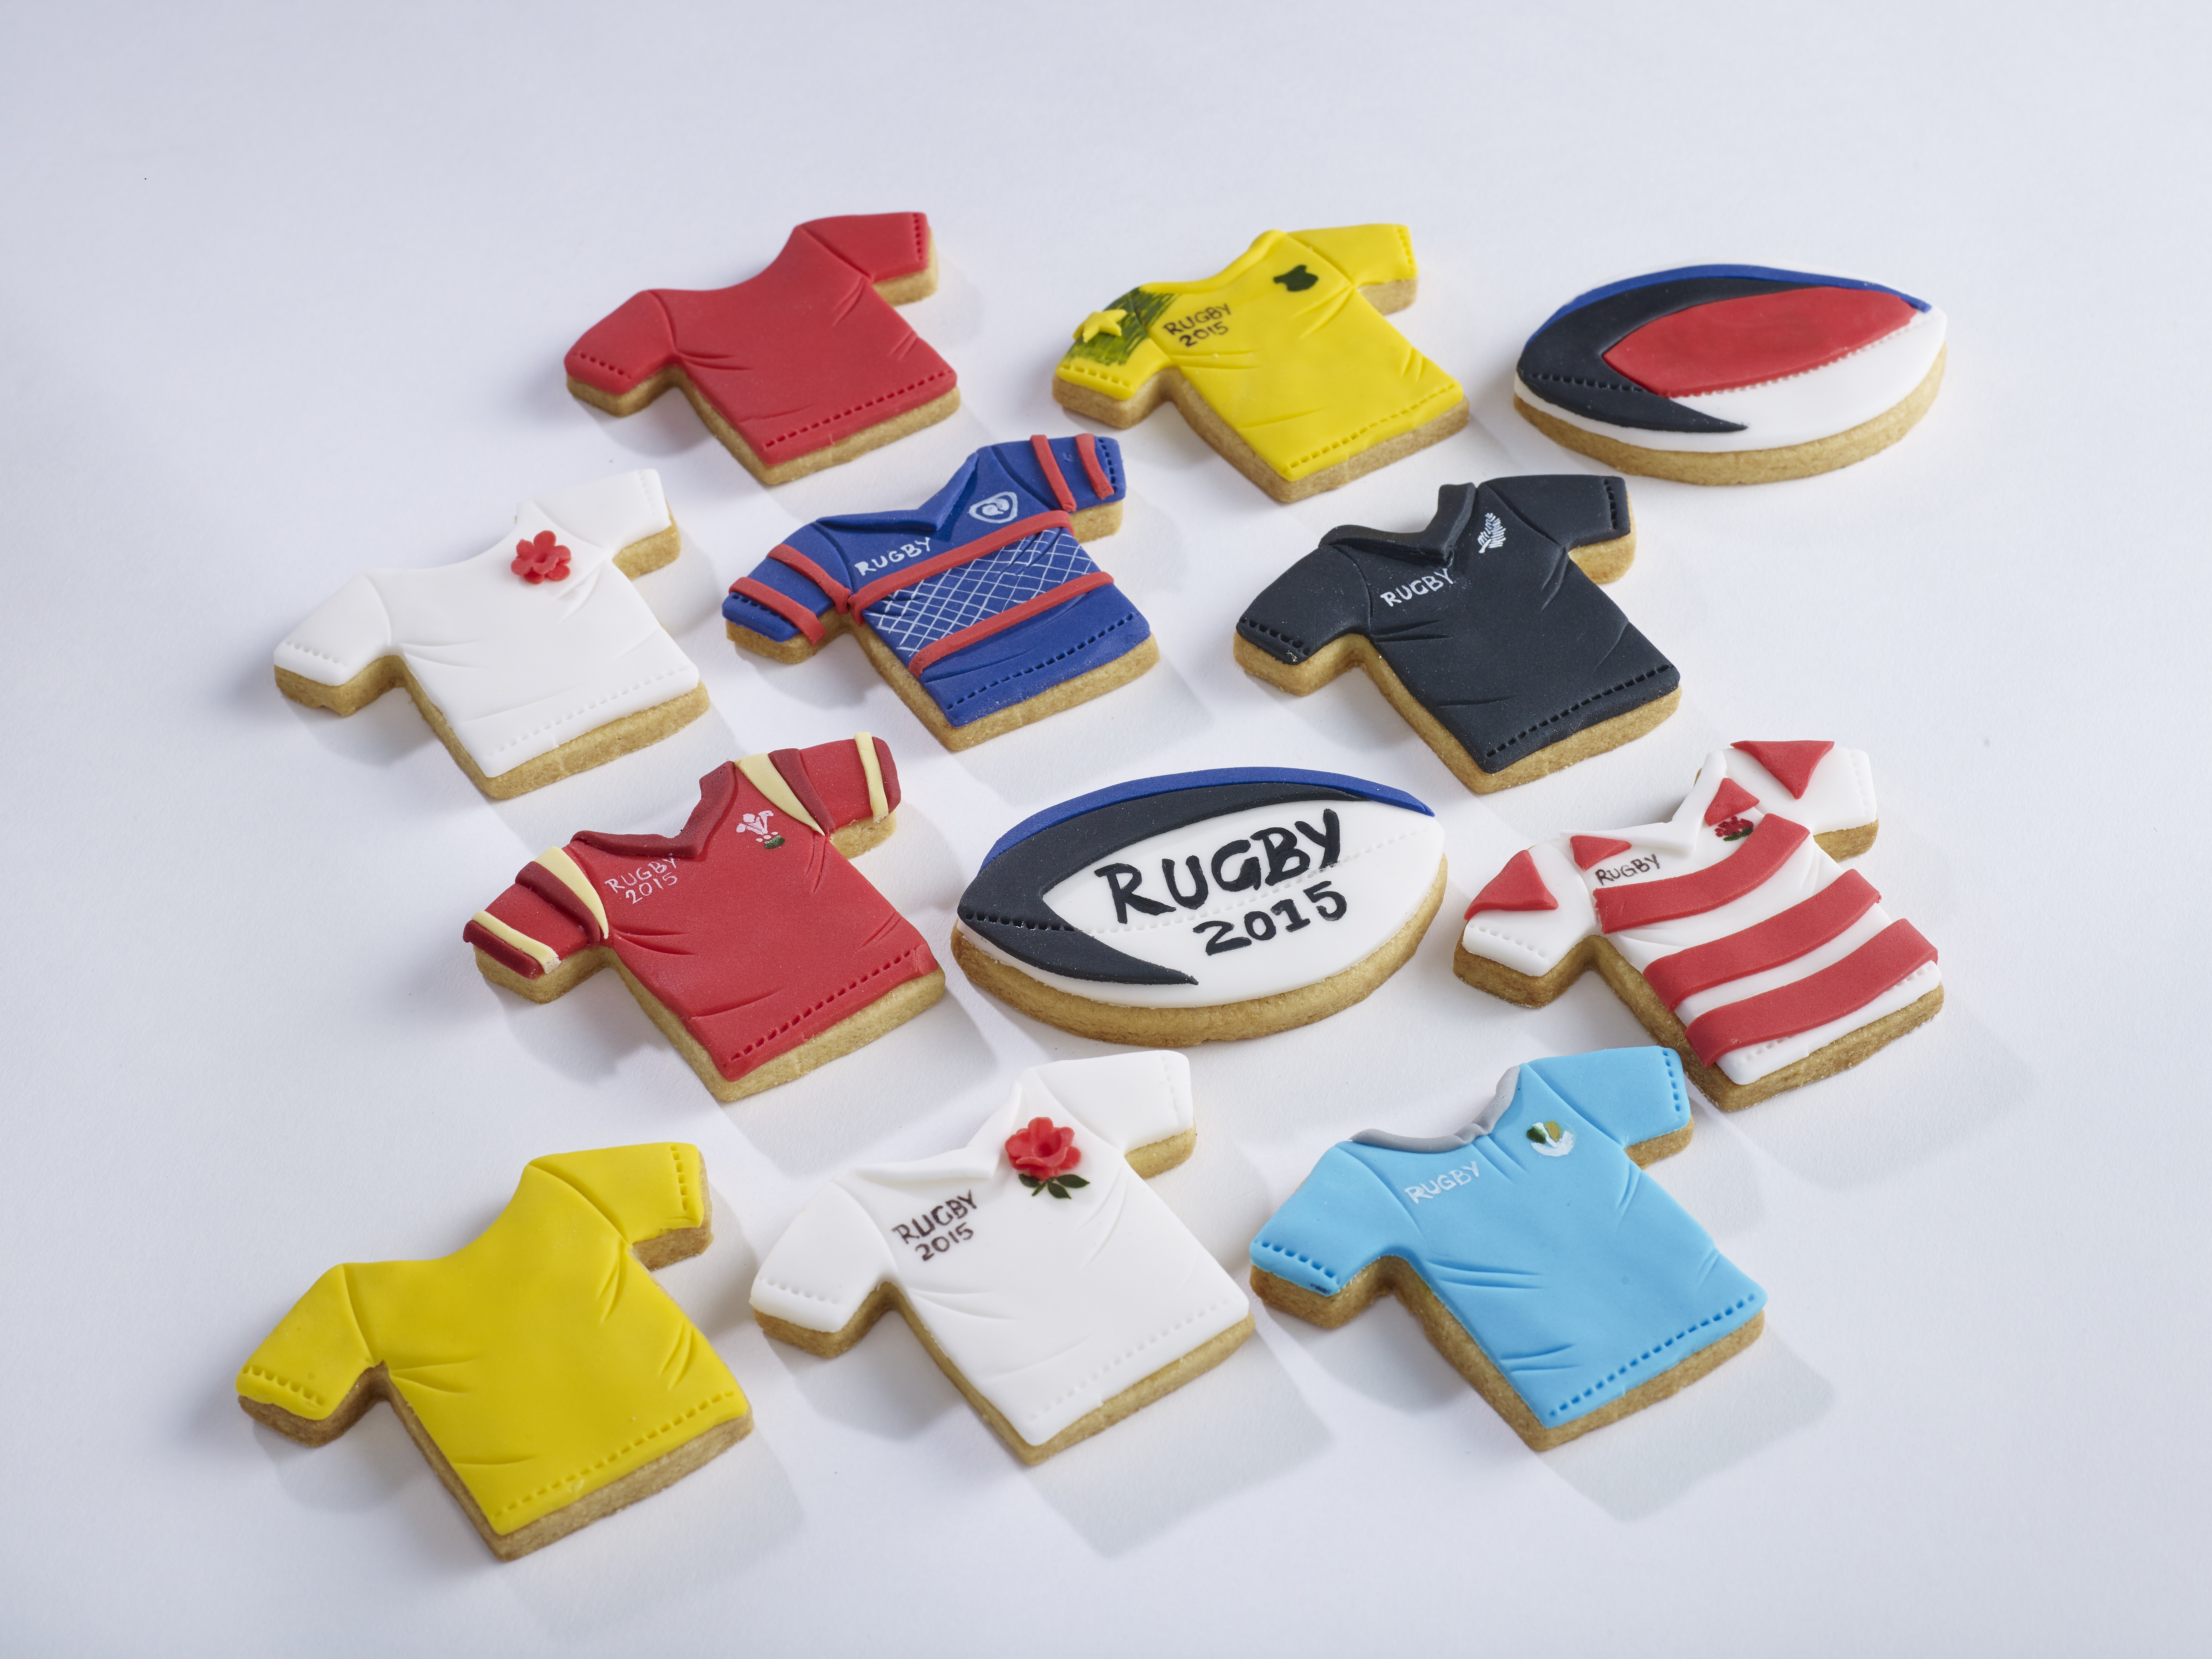 Rugby World Cup Shirt Biscuits